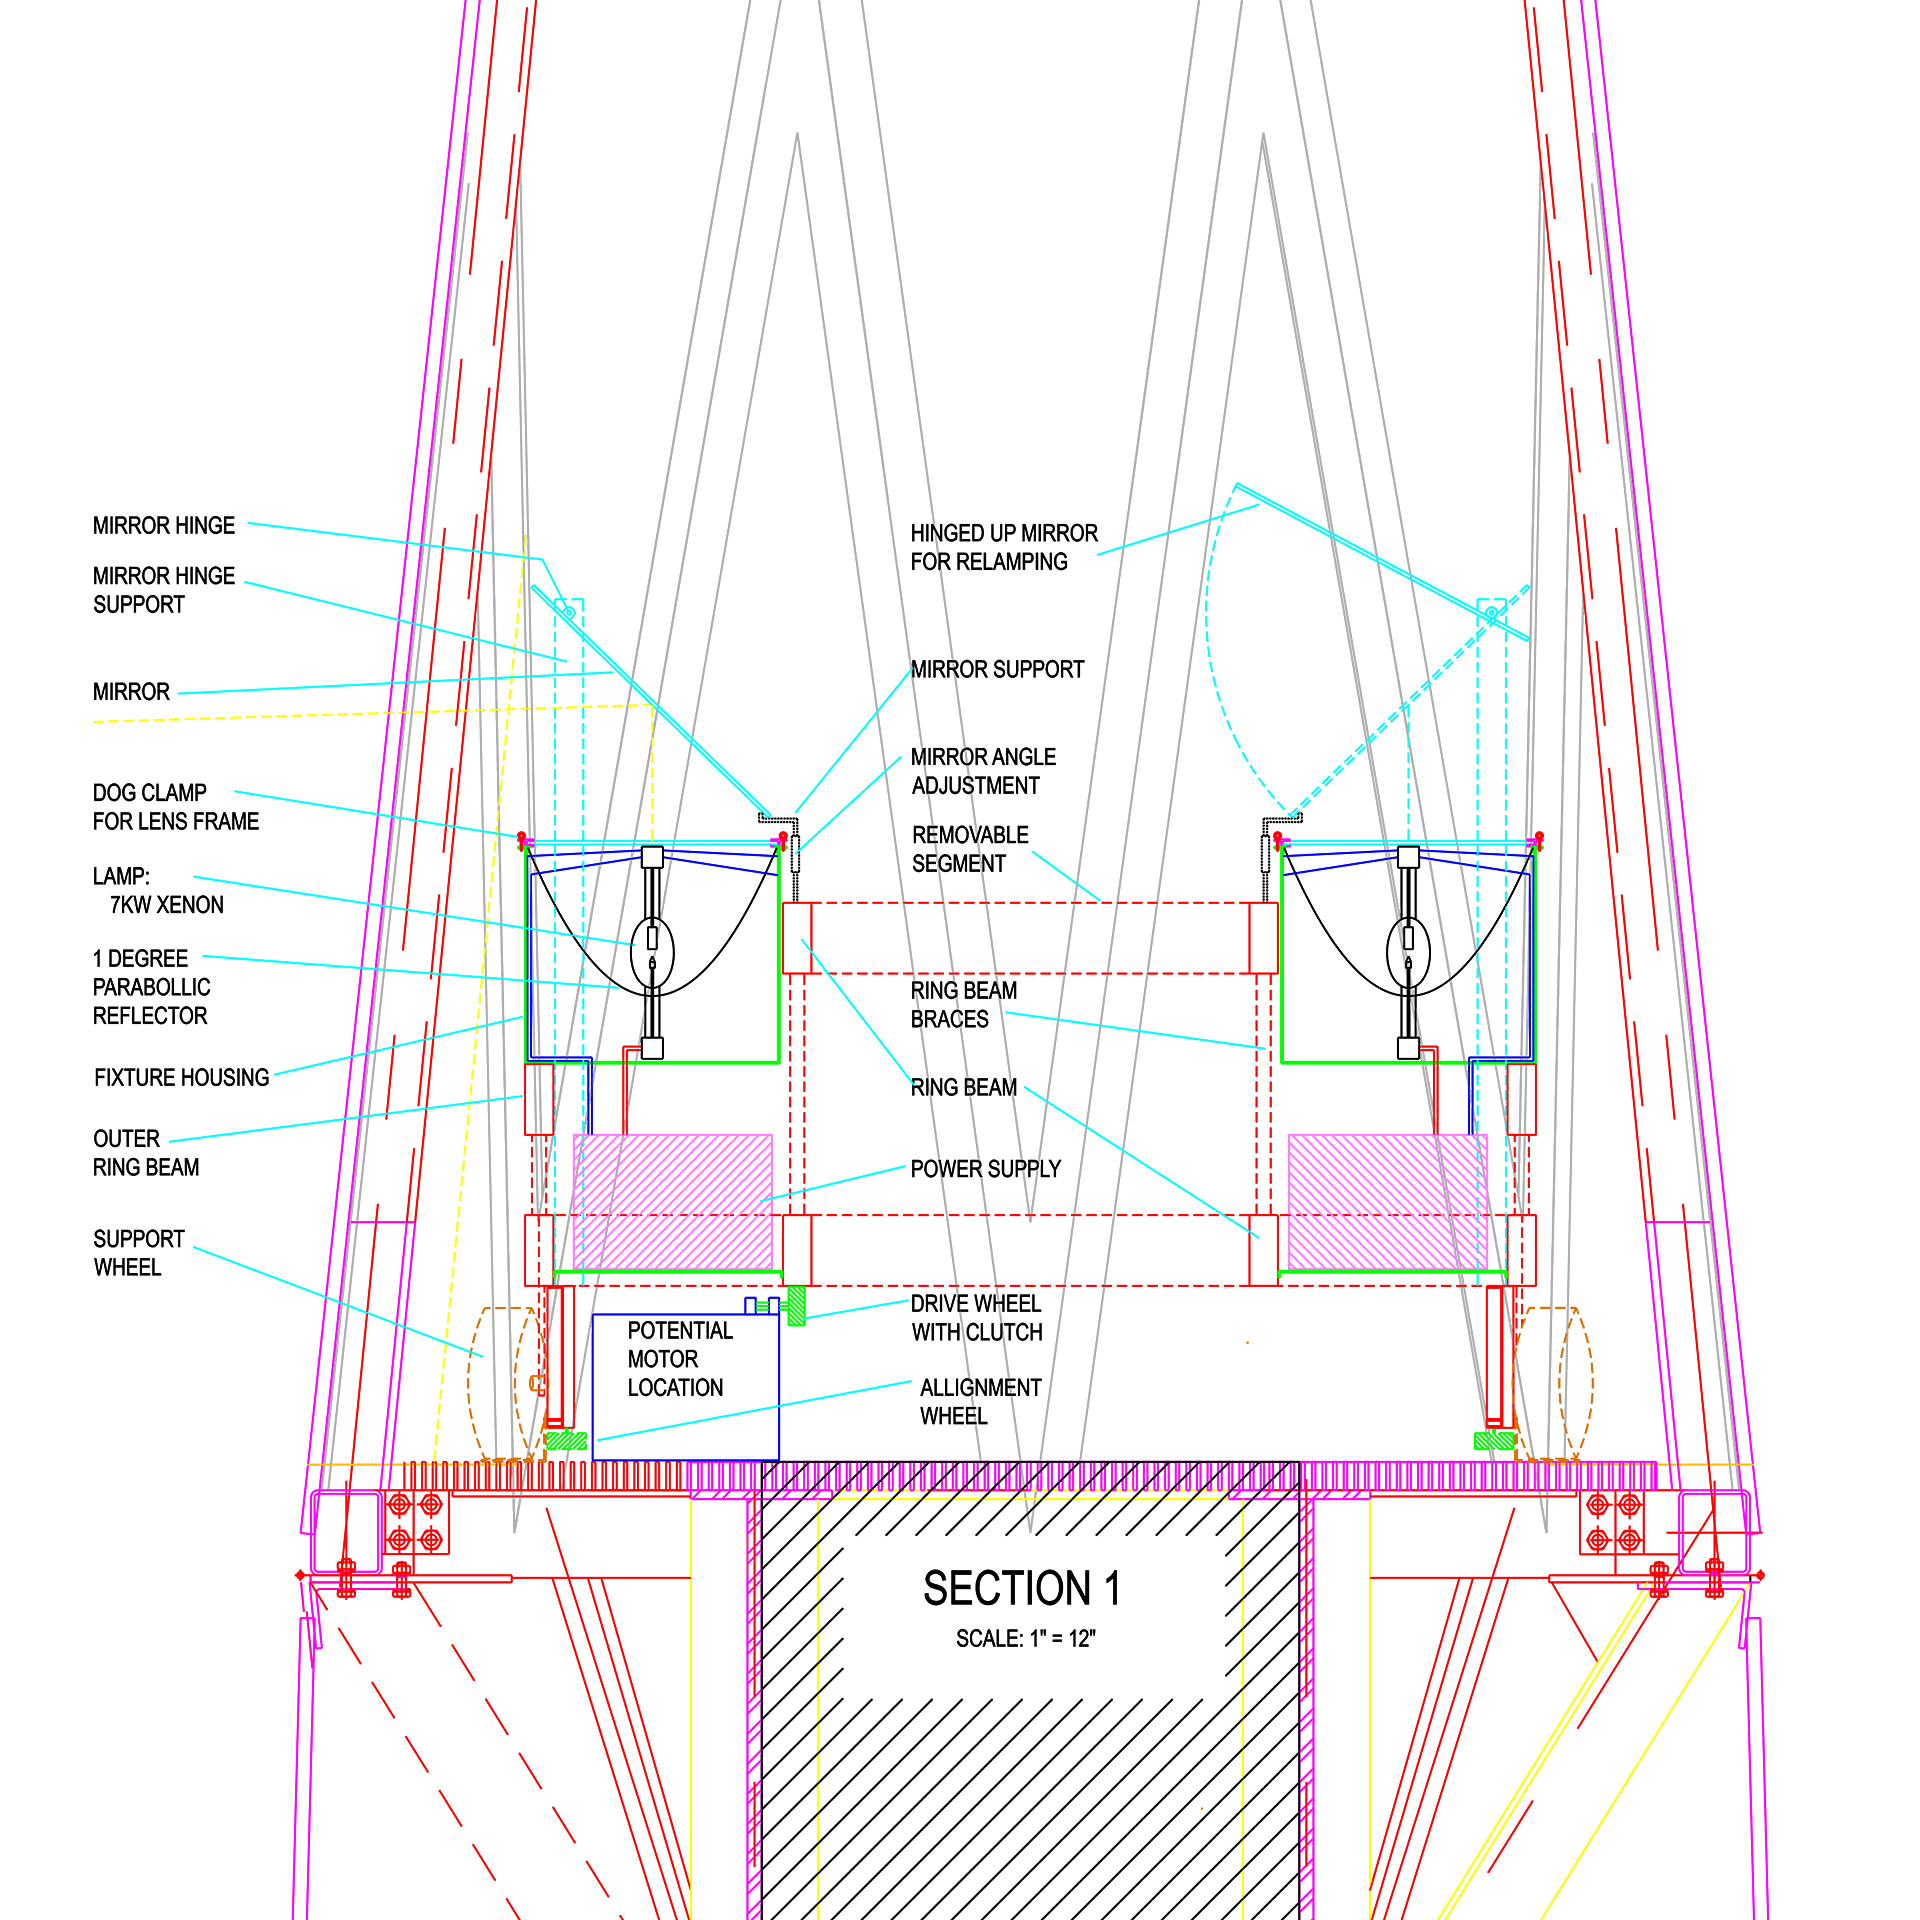 hight resolution of 5 beacon light section